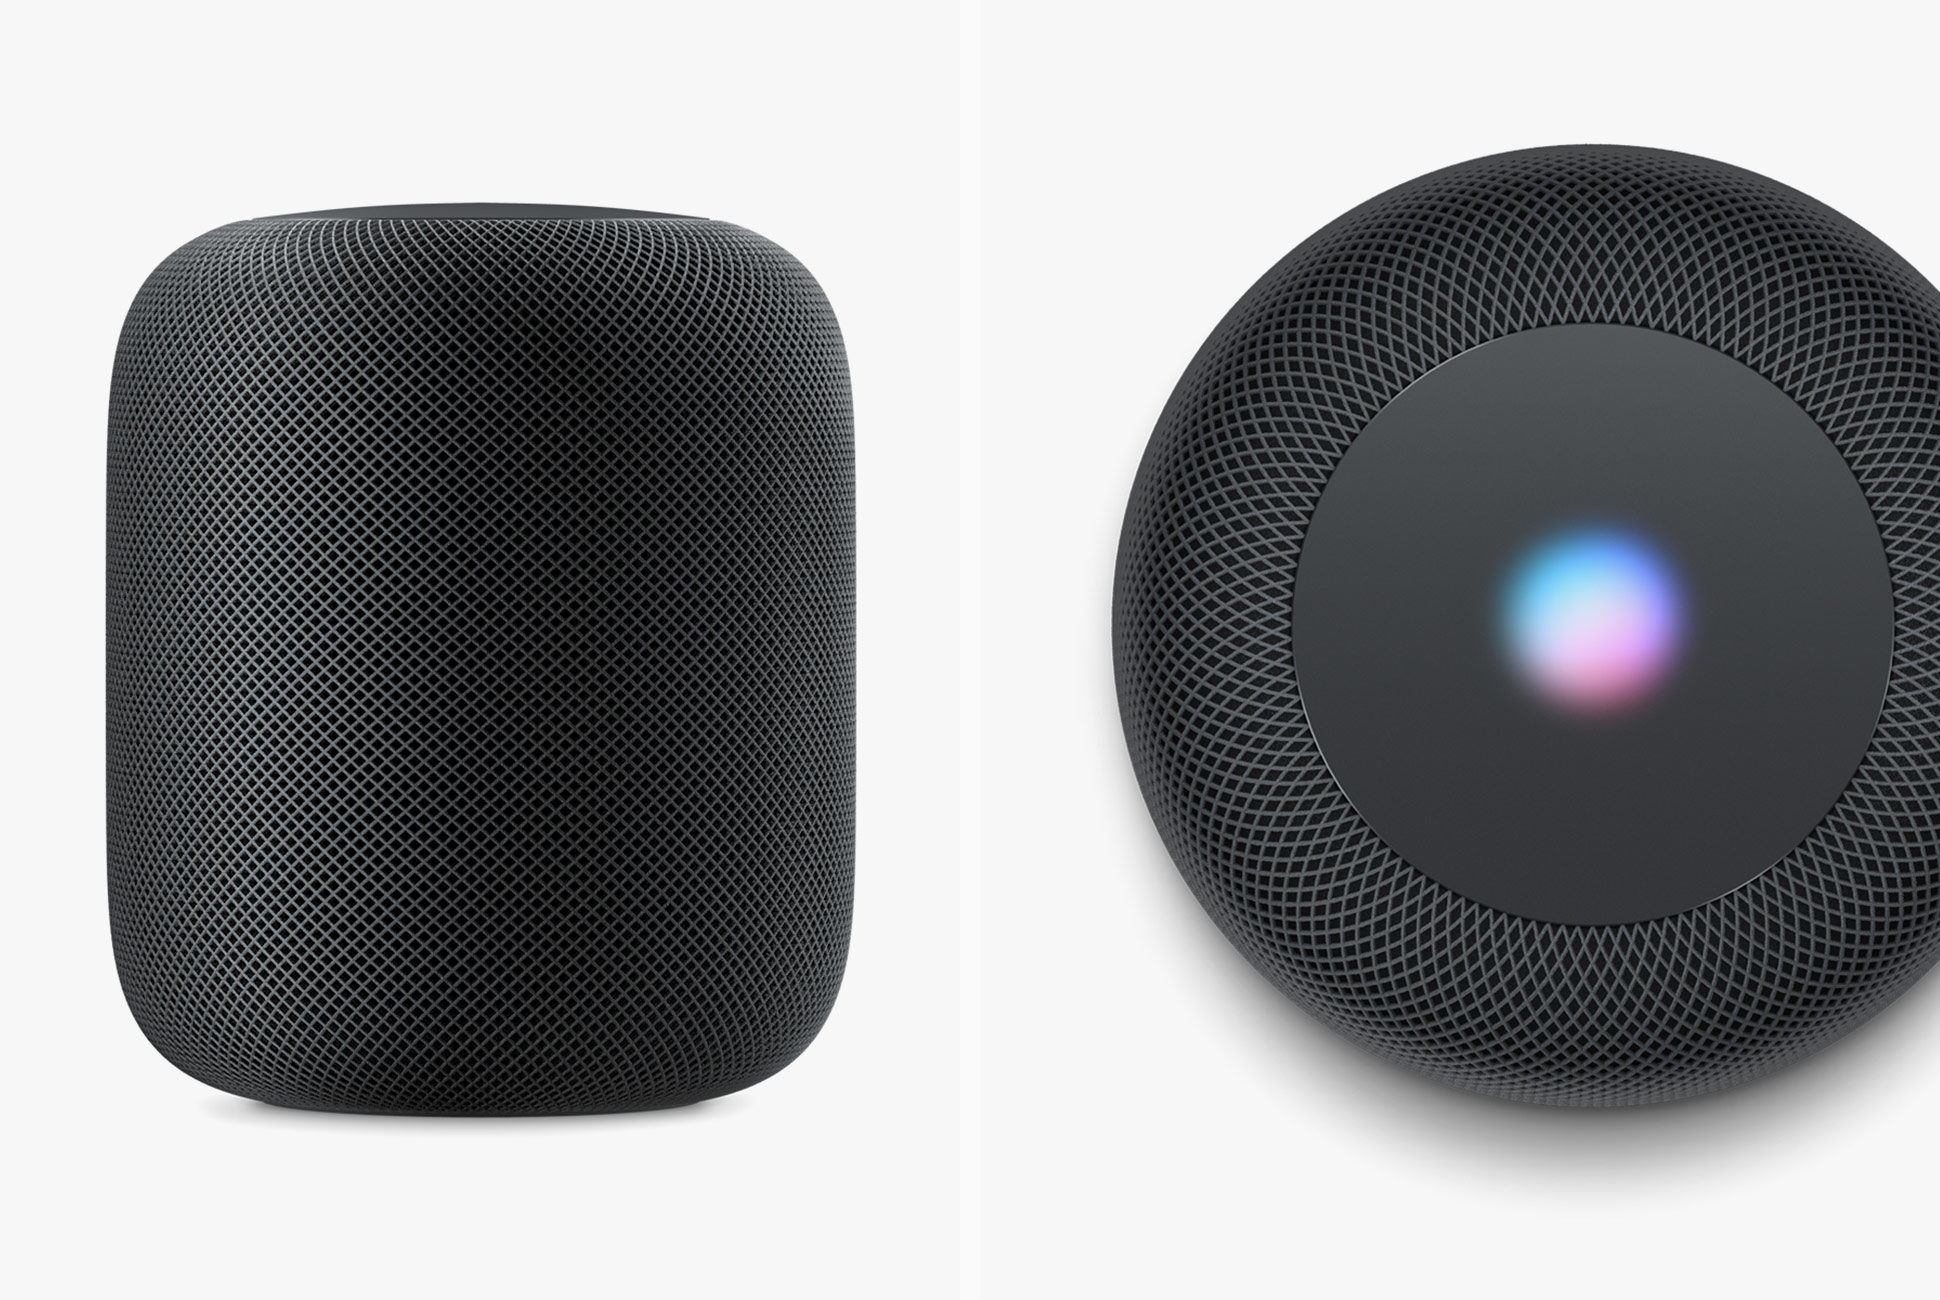 Homepod-Gear-Patrol-Slide-2-1940x1300